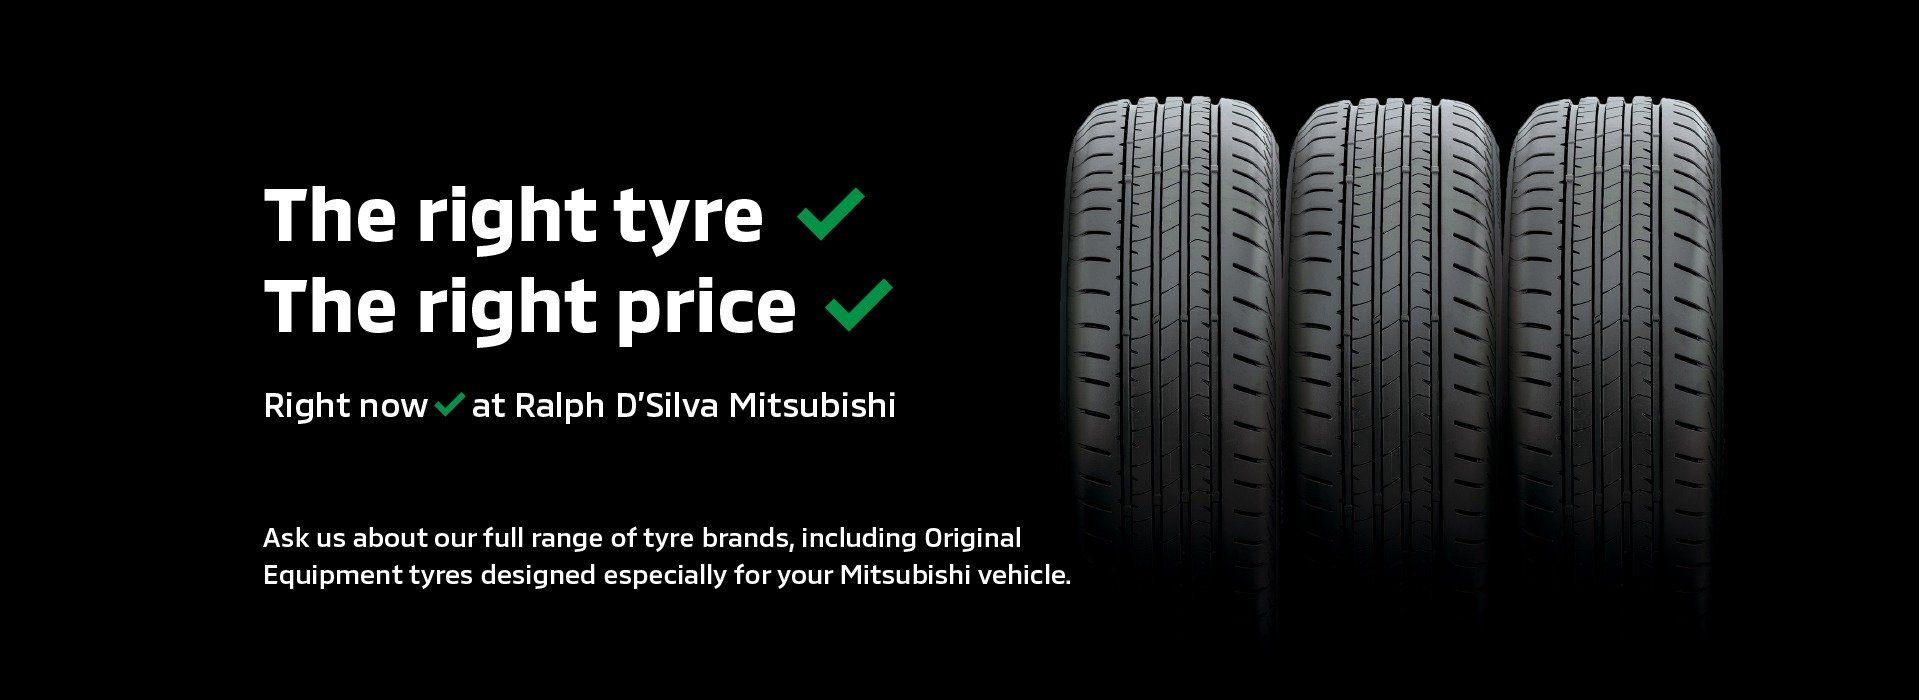 Right tyre right price